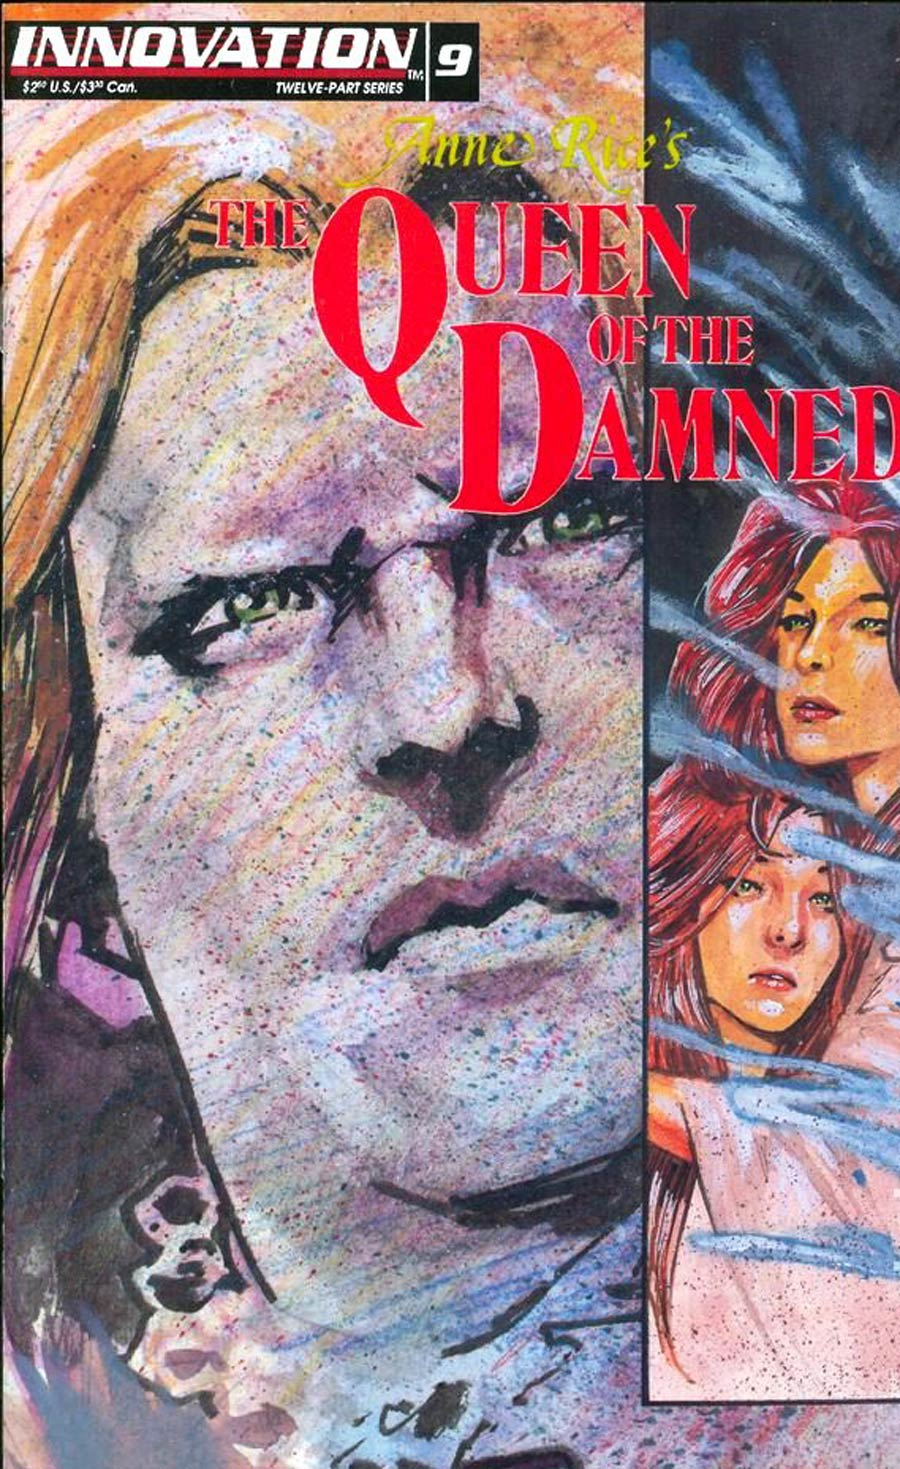 Anne Rices The Queen Of The Damned #9